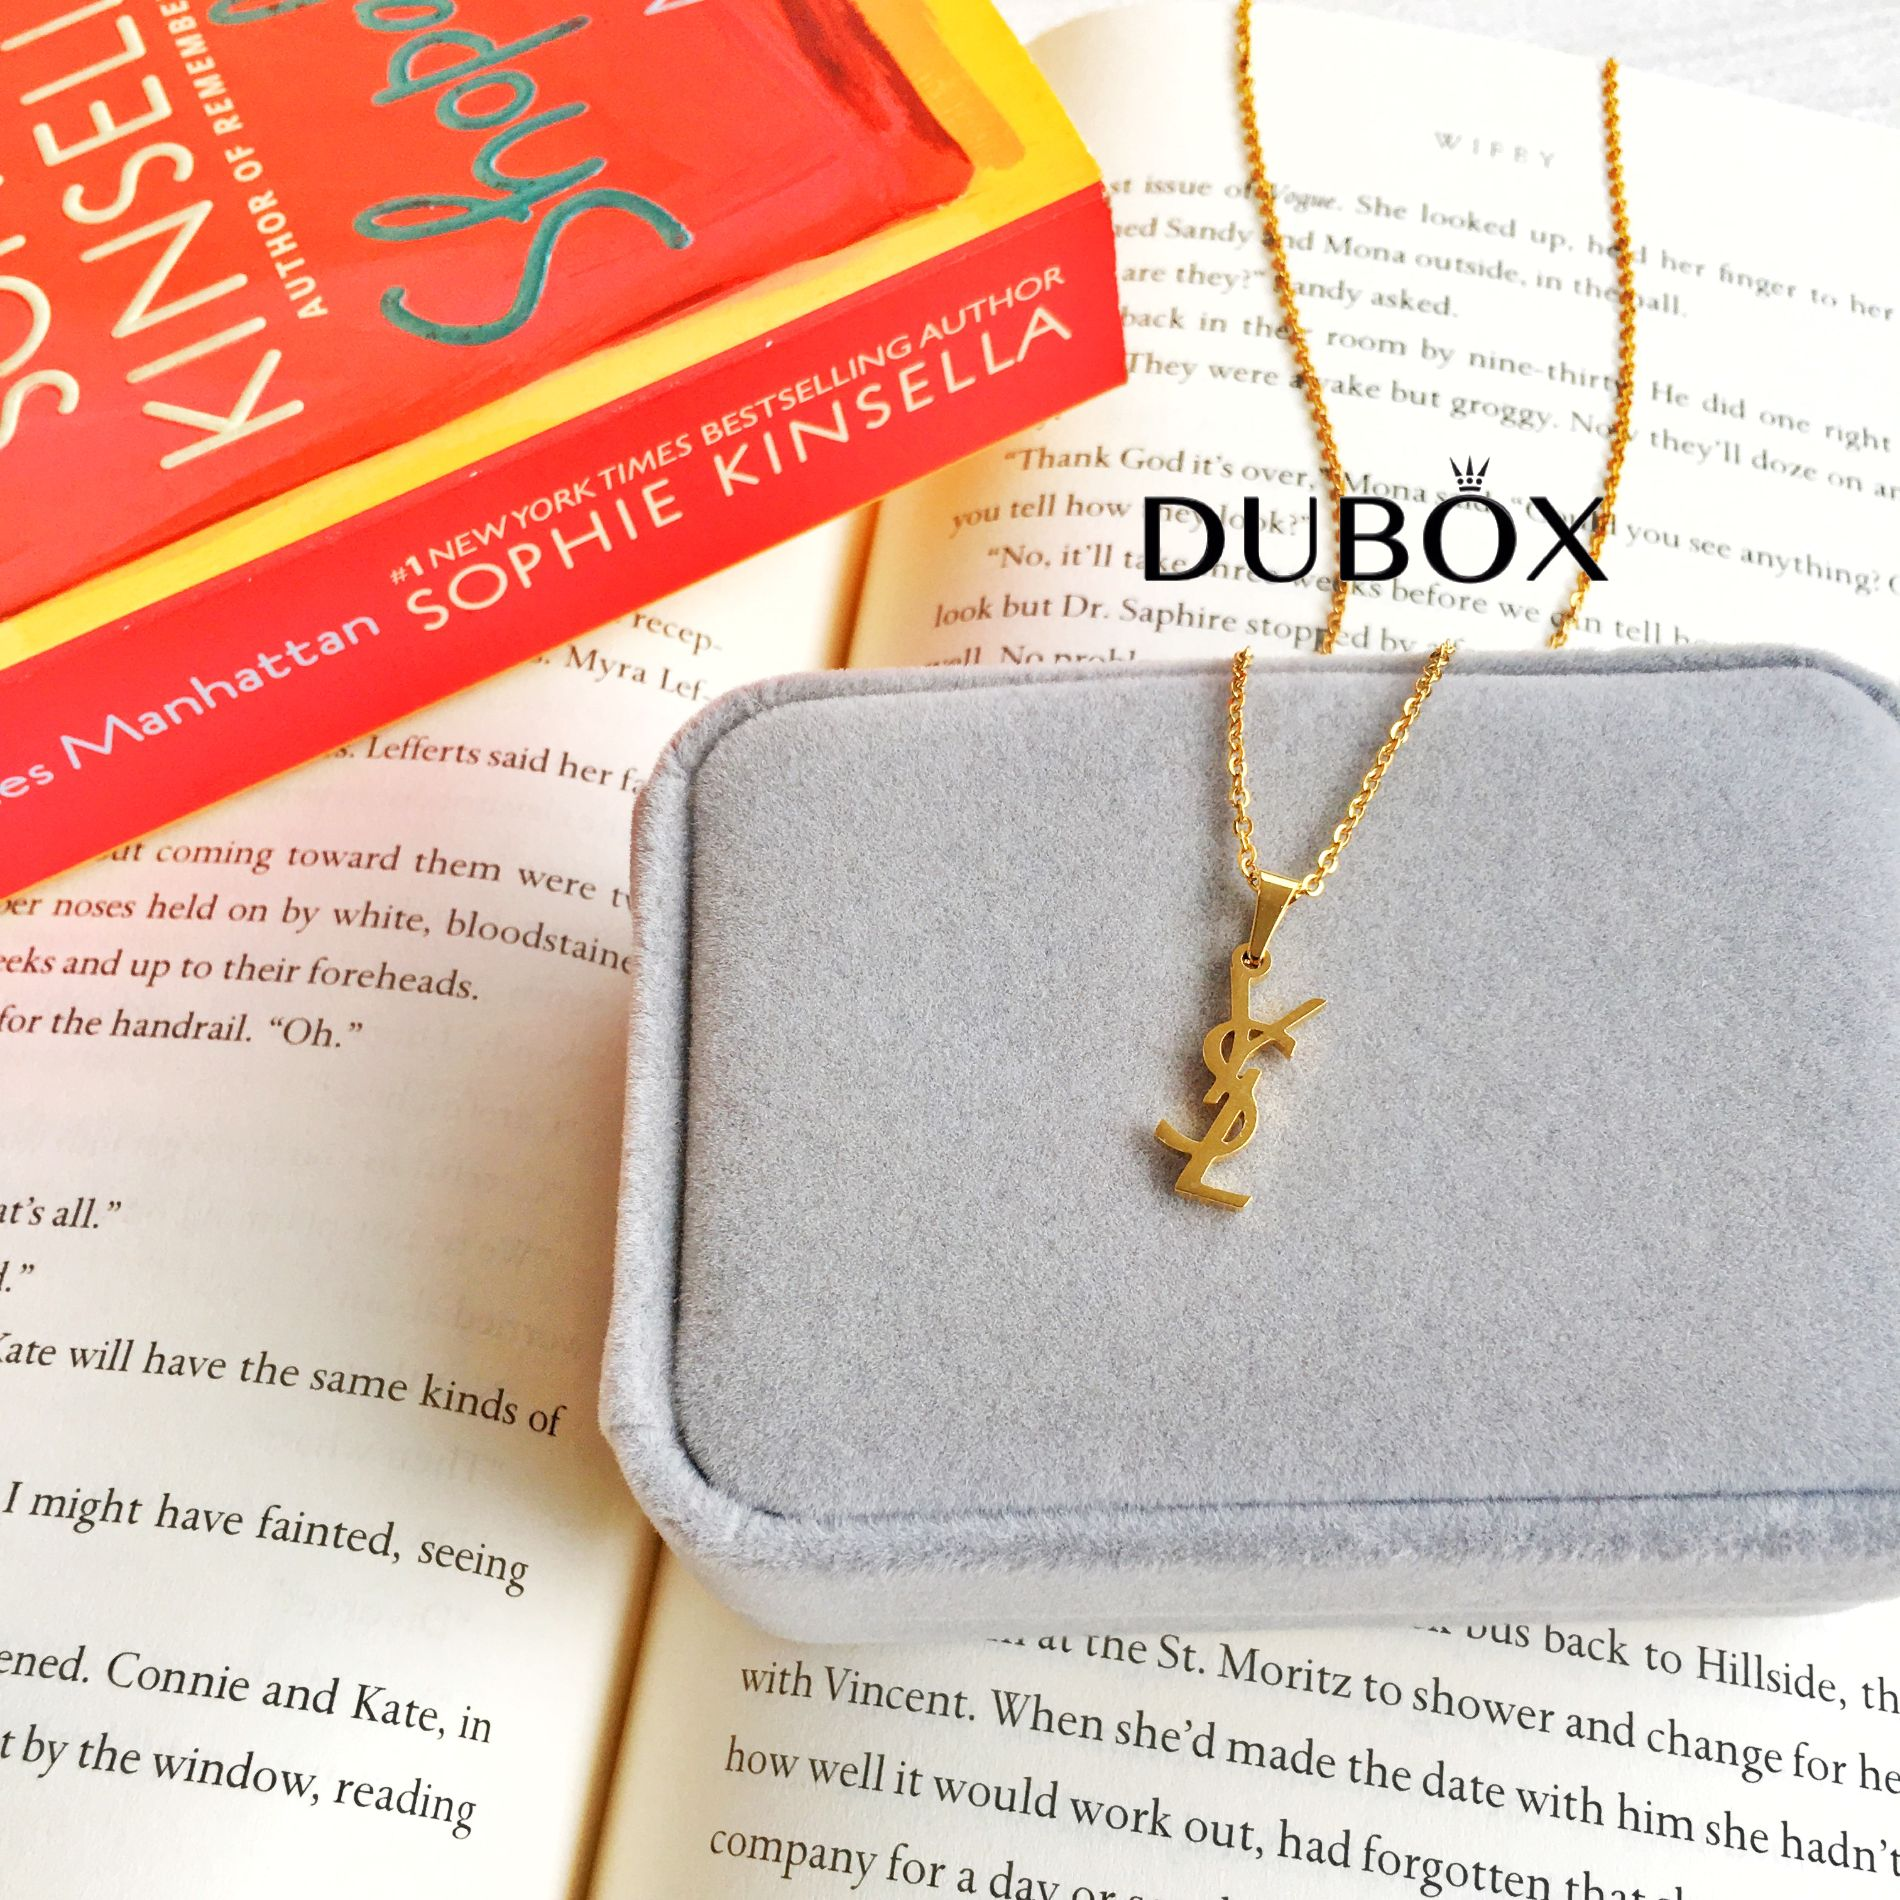 4046f909da6 Specifications of (BUY 1 + FREE EARRINGS) DUBOX PH 18K Gold-Plated  Hypoallergenic Non-Tarnish Stainless Steel Fashion Designer YSL-Inspired  Brand Necklace ...